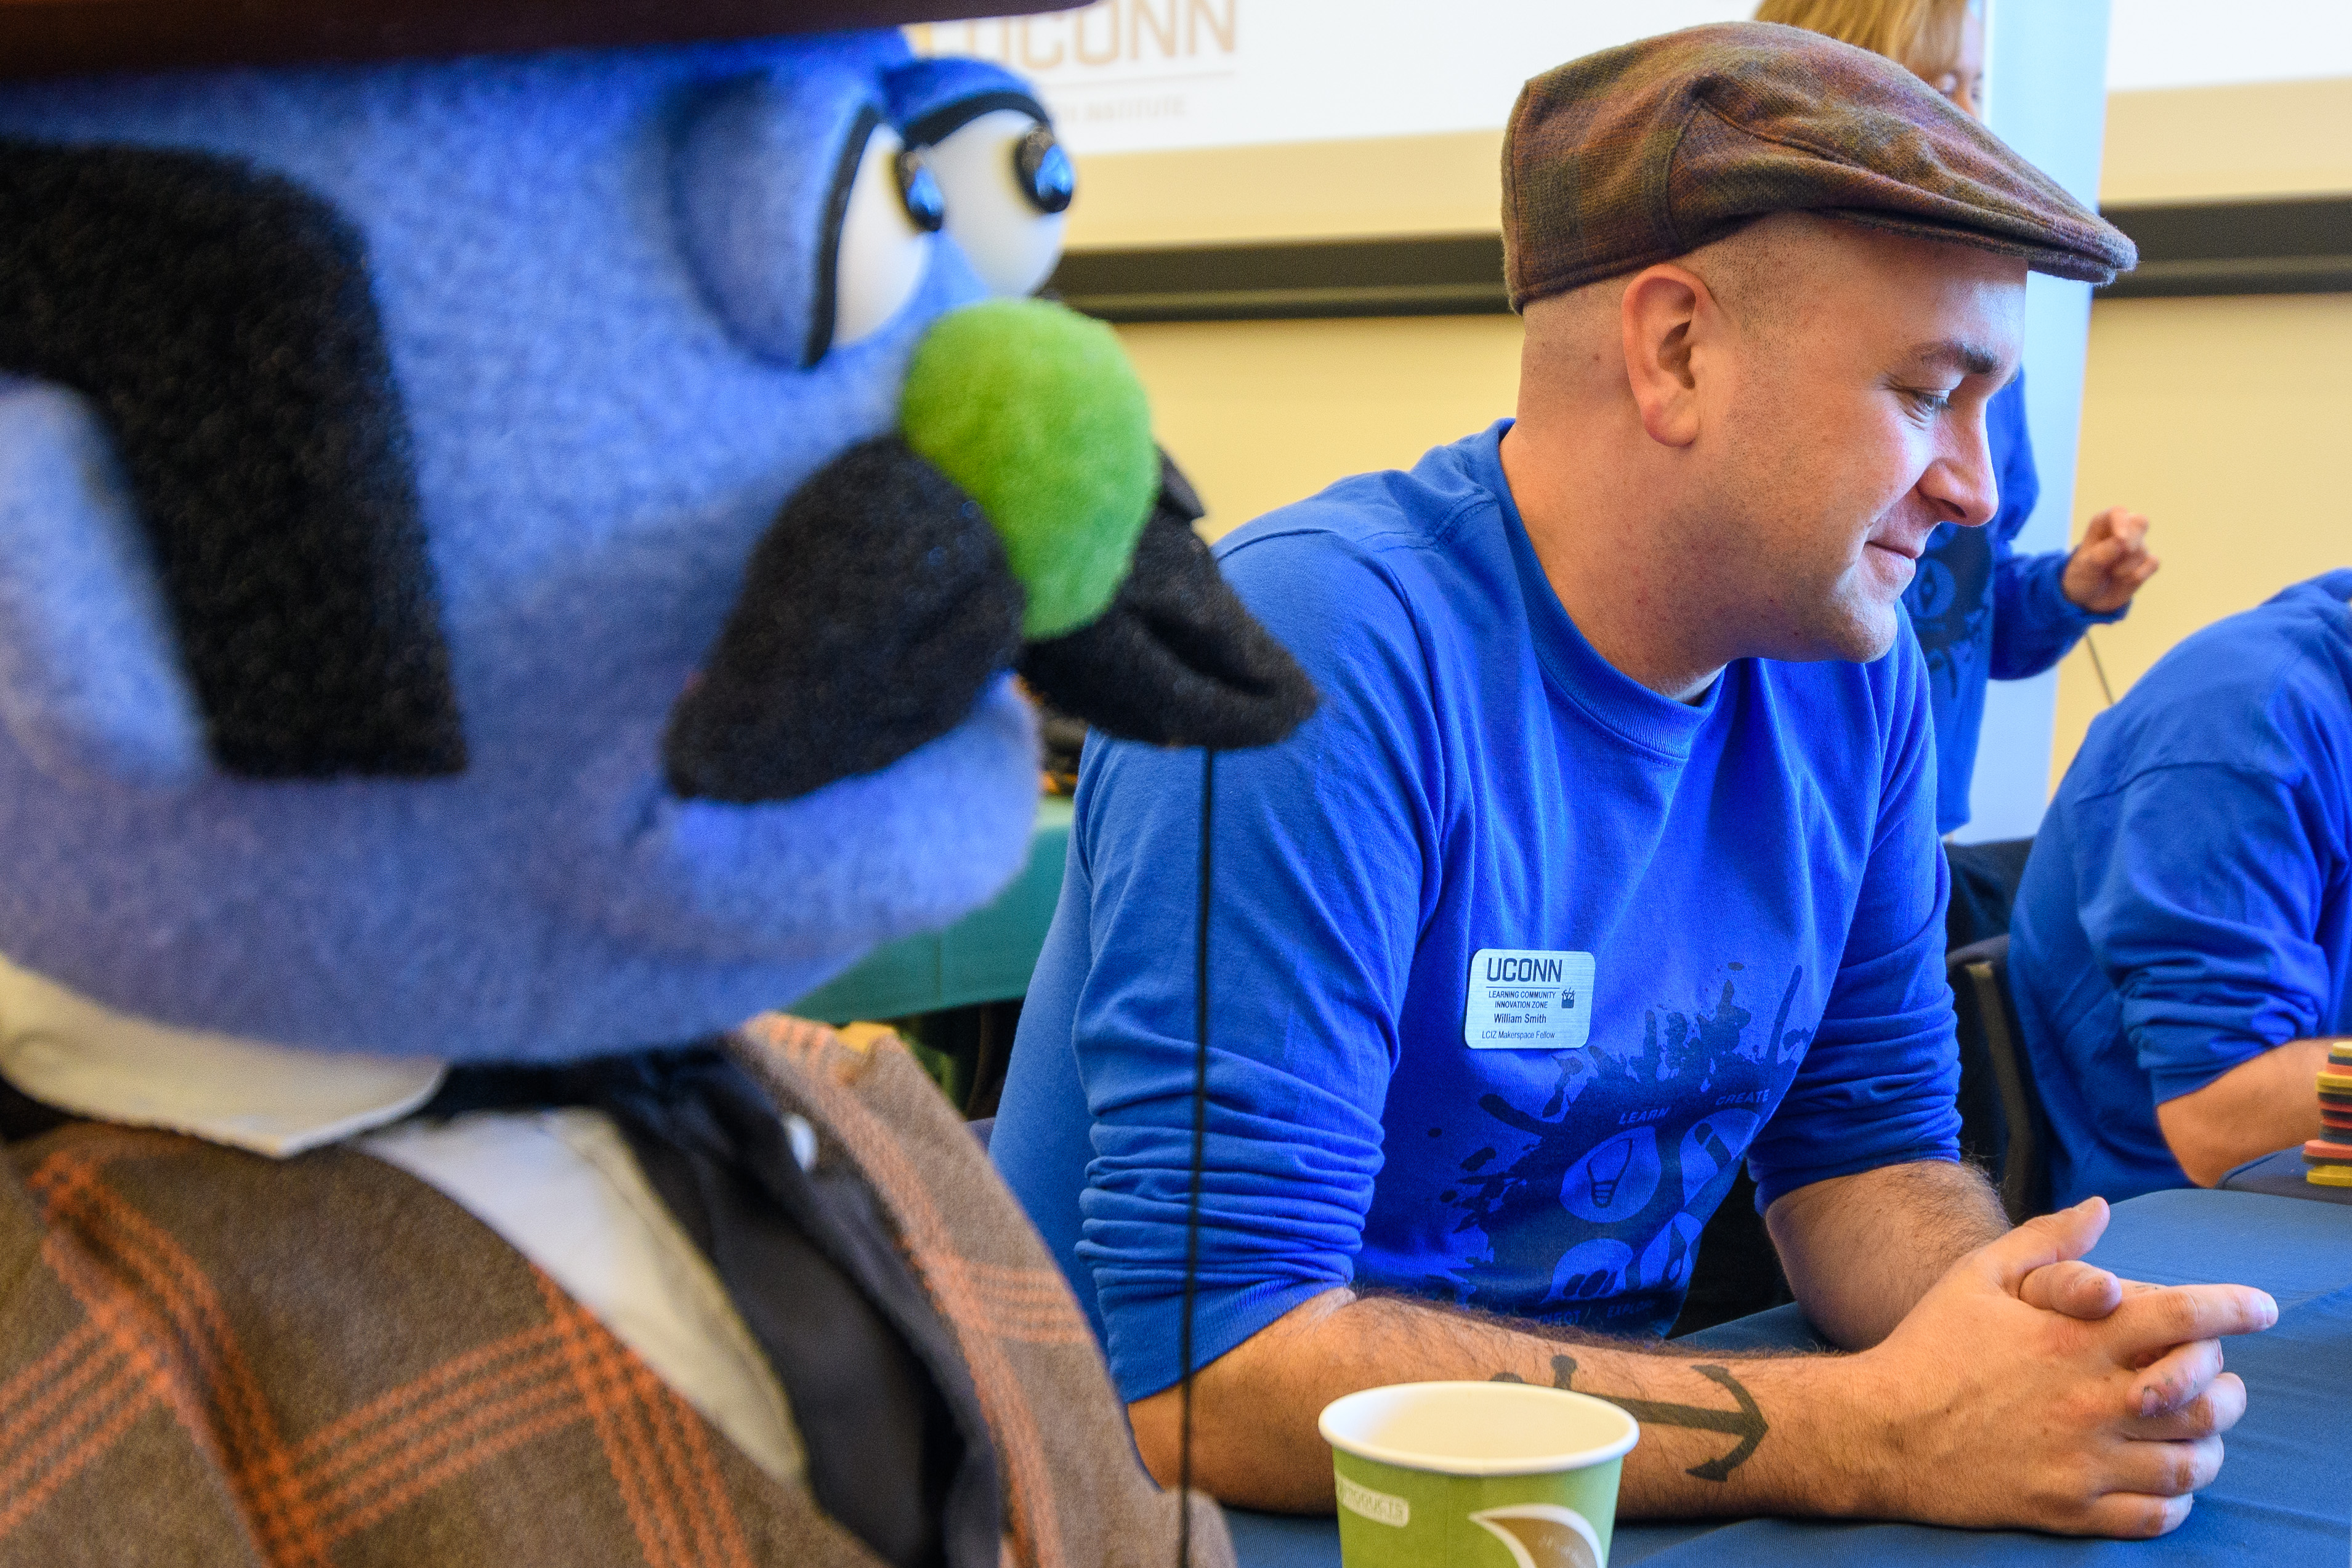 A man sits next to a large blue puppet with a mustache and tie, as part of an innovation event